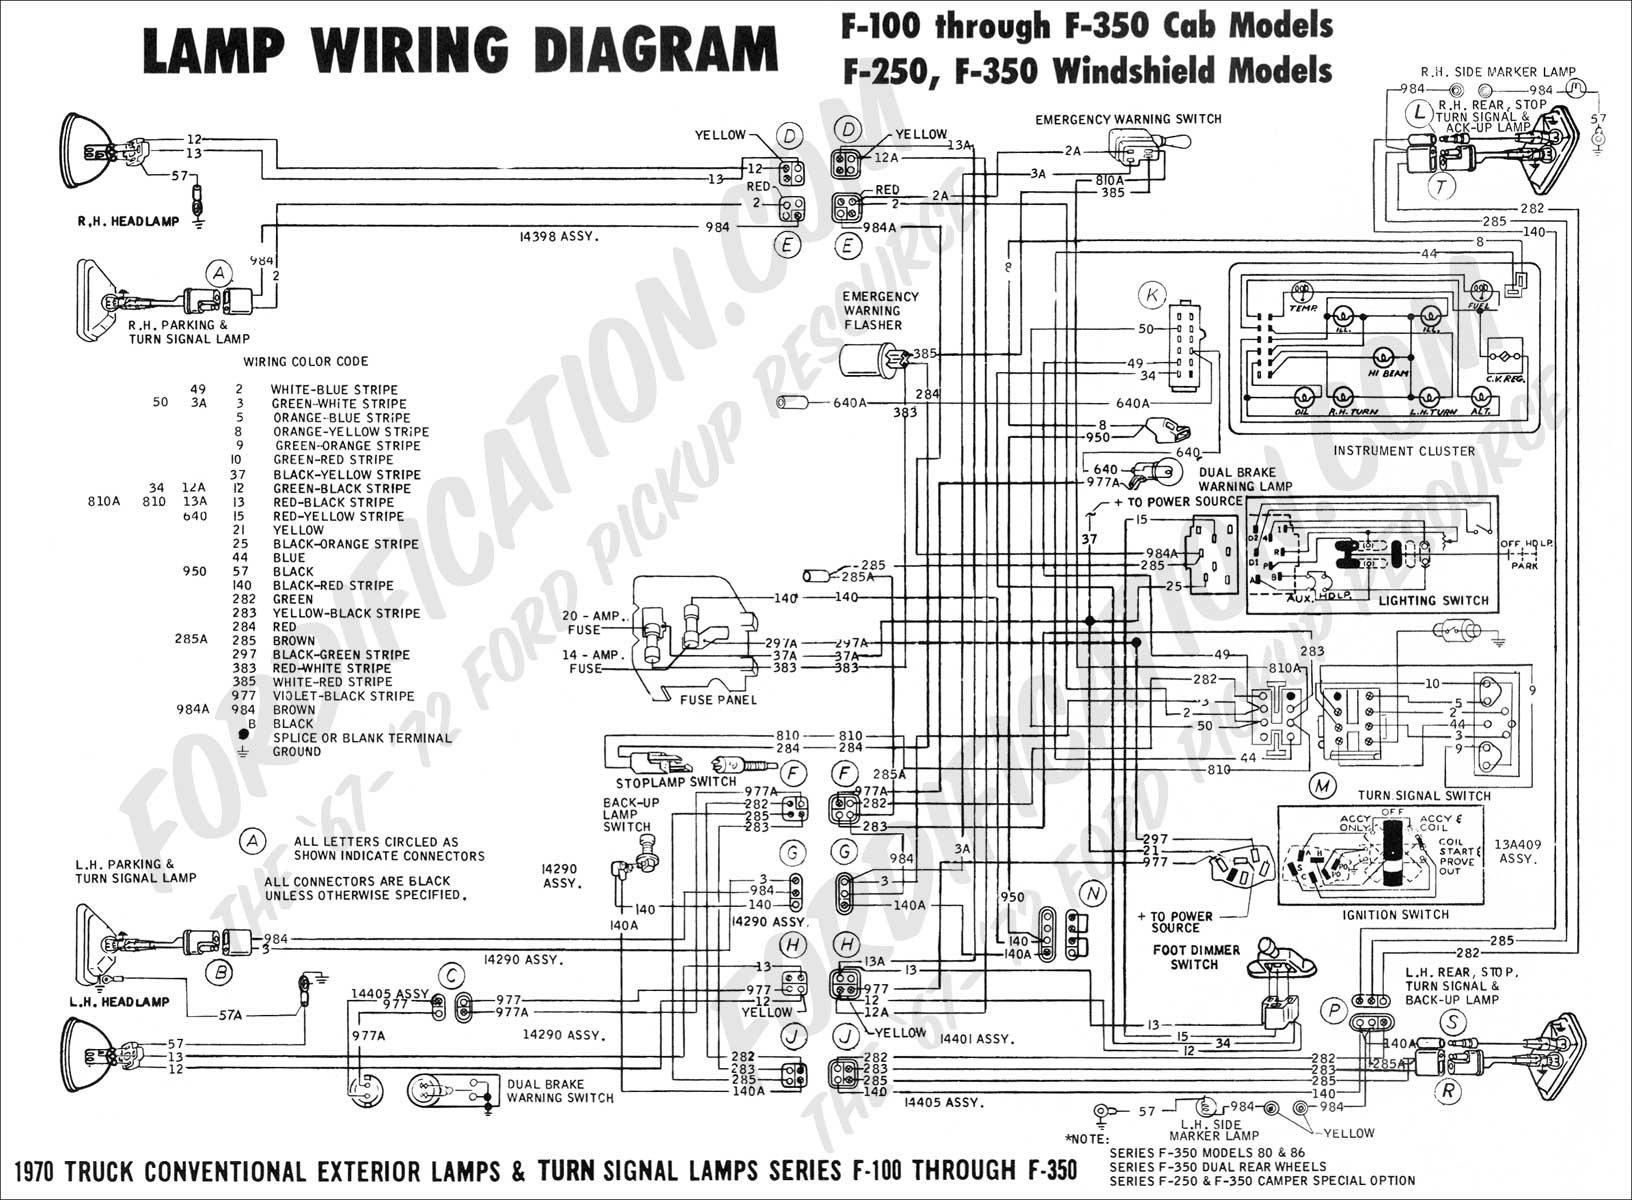 2005 Ford F750 Wiring Diagrams | Wiring Diagram - 2013 F 150 7 Pin Trailer Wiring Diagram